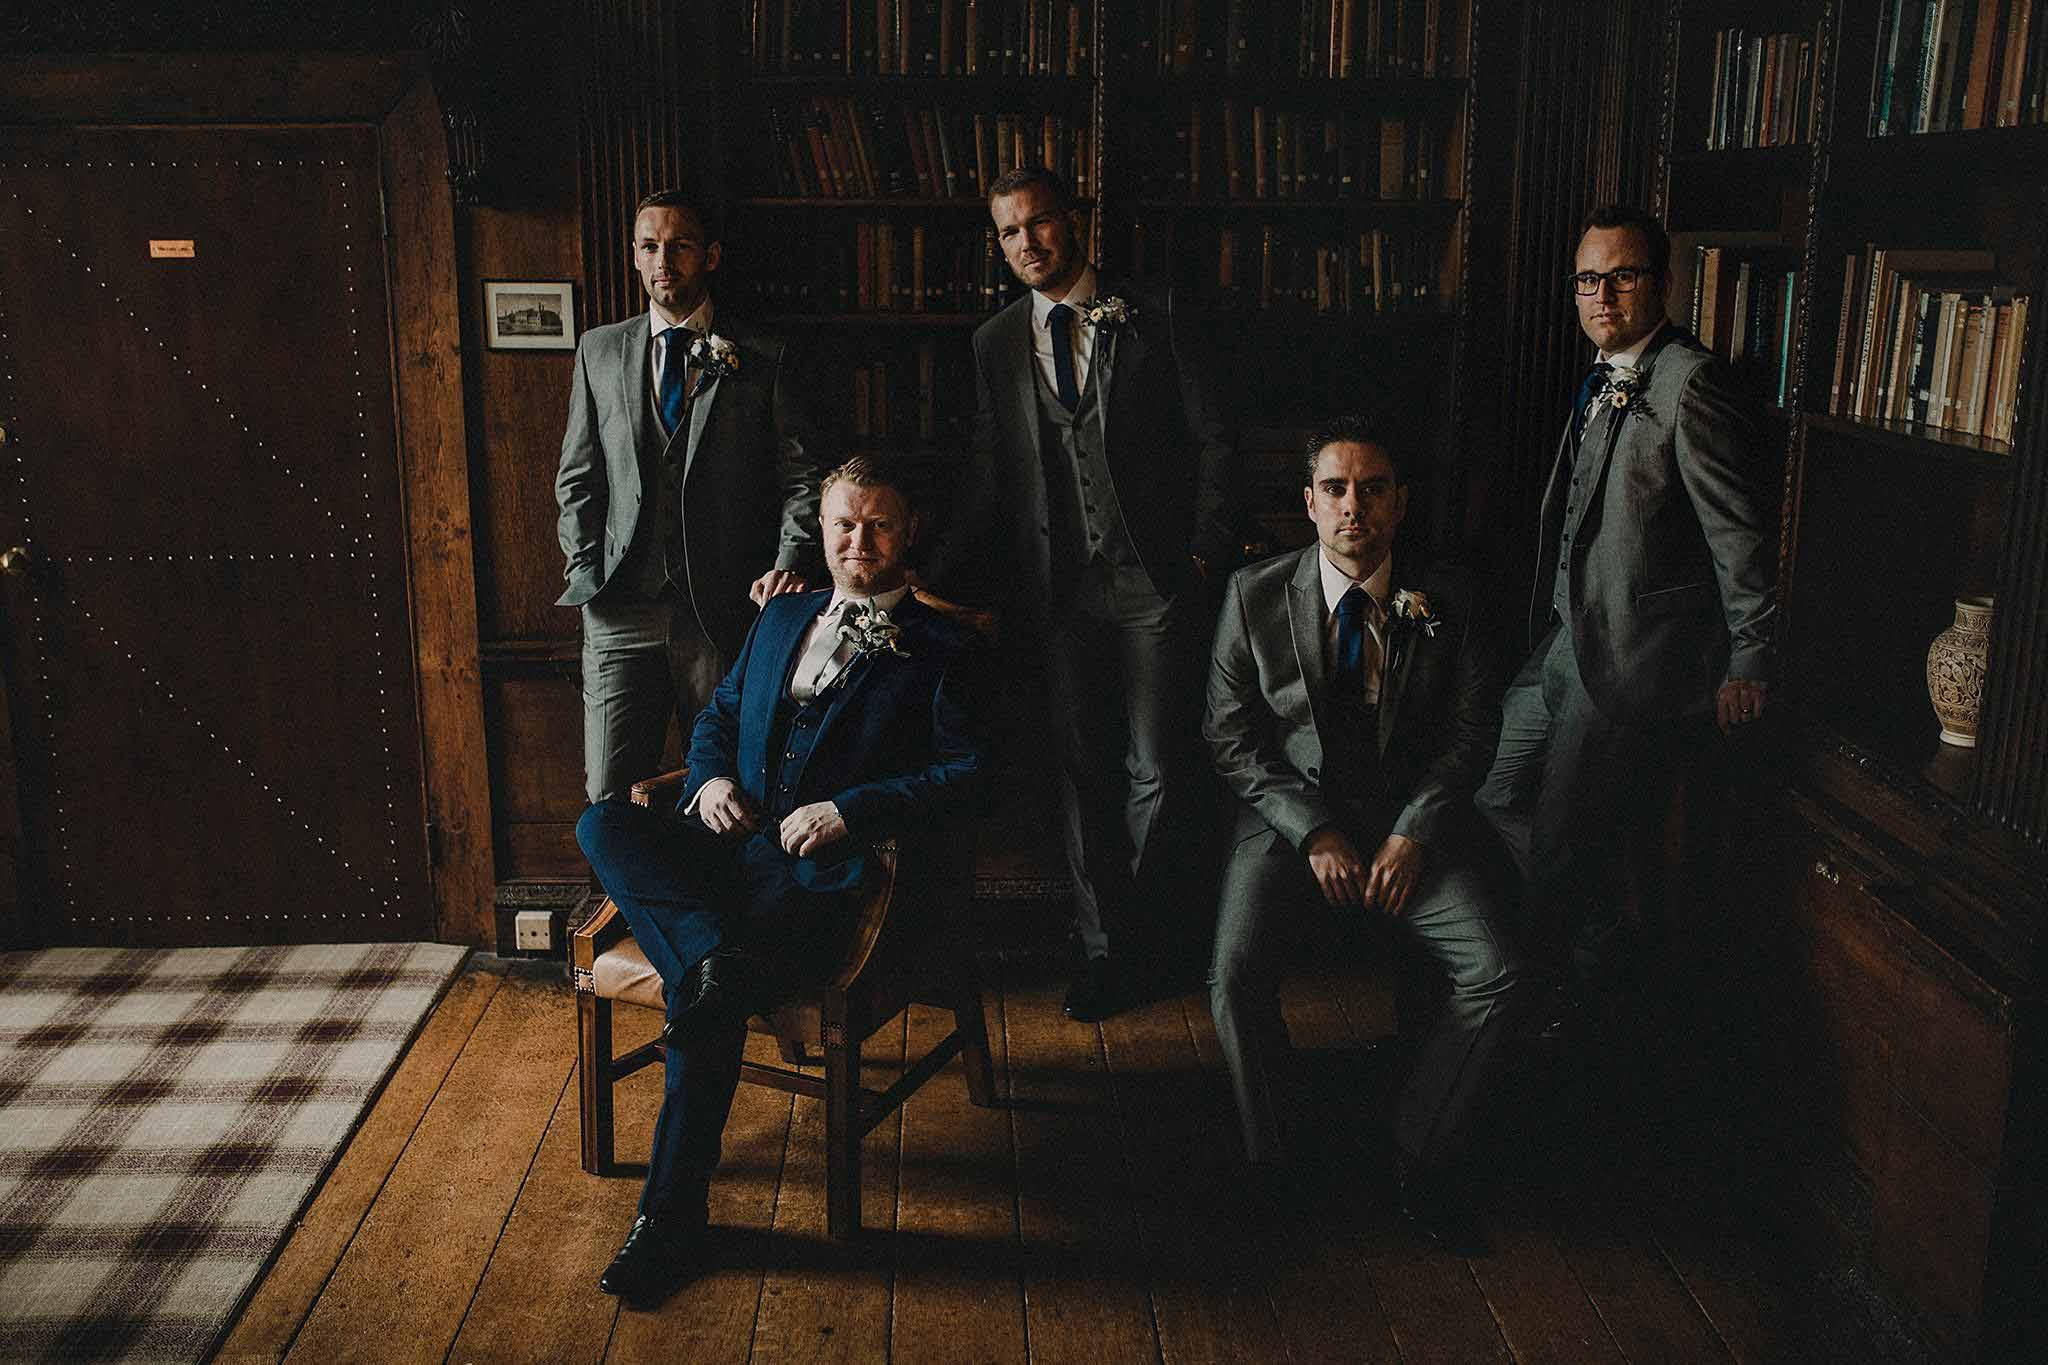 Groomsmen Wedding Photo - Gosfield Hall Wedding Photo